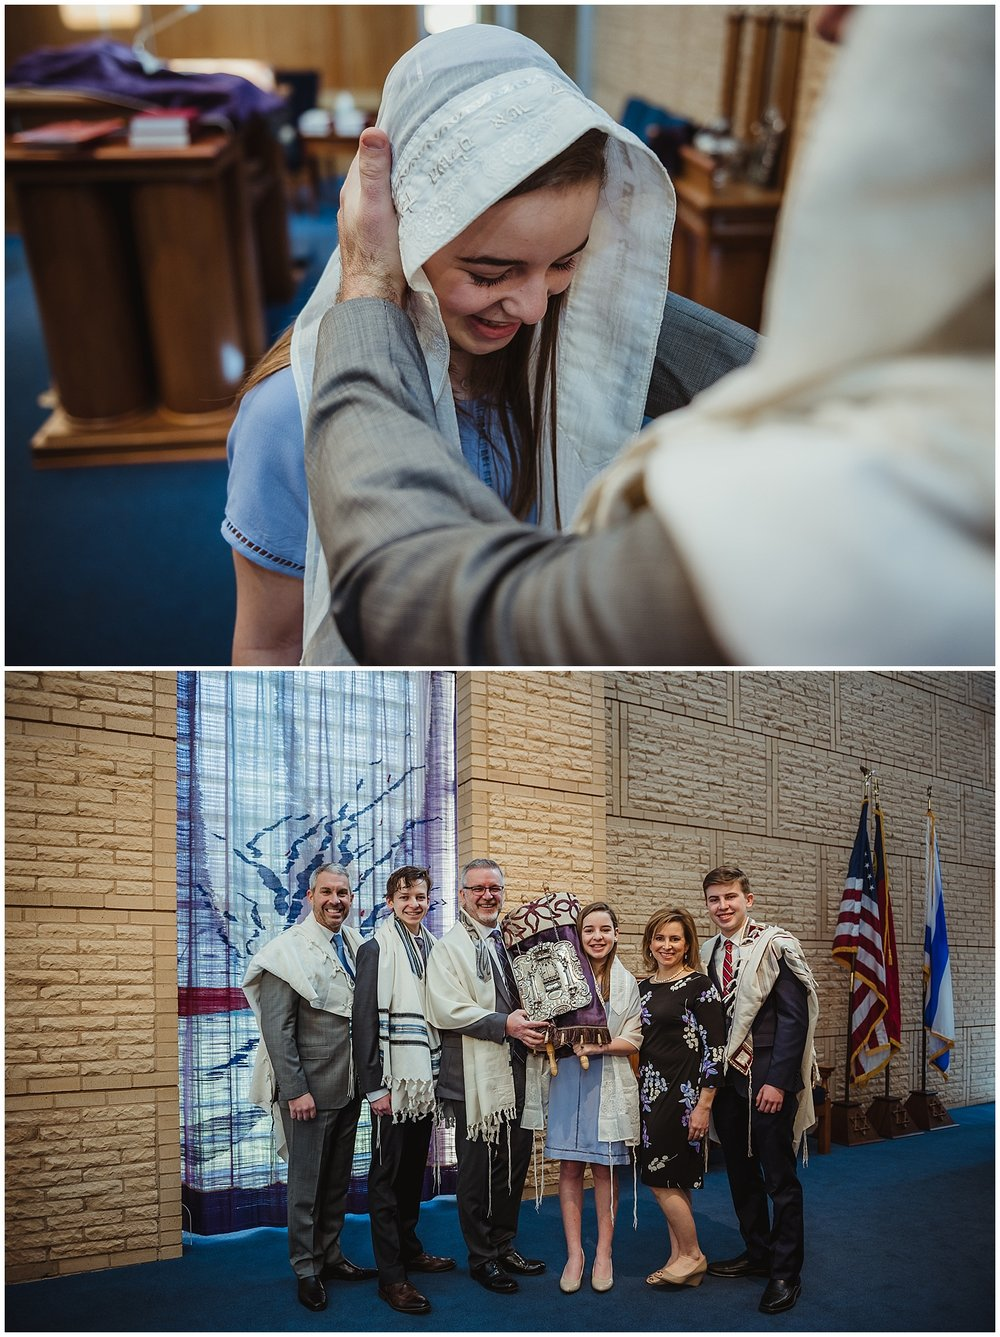 The rabbi gives his blessing while the family stands with the Torah in front of the ark at Beth Meyer Synagogue in Raleigh, NC.